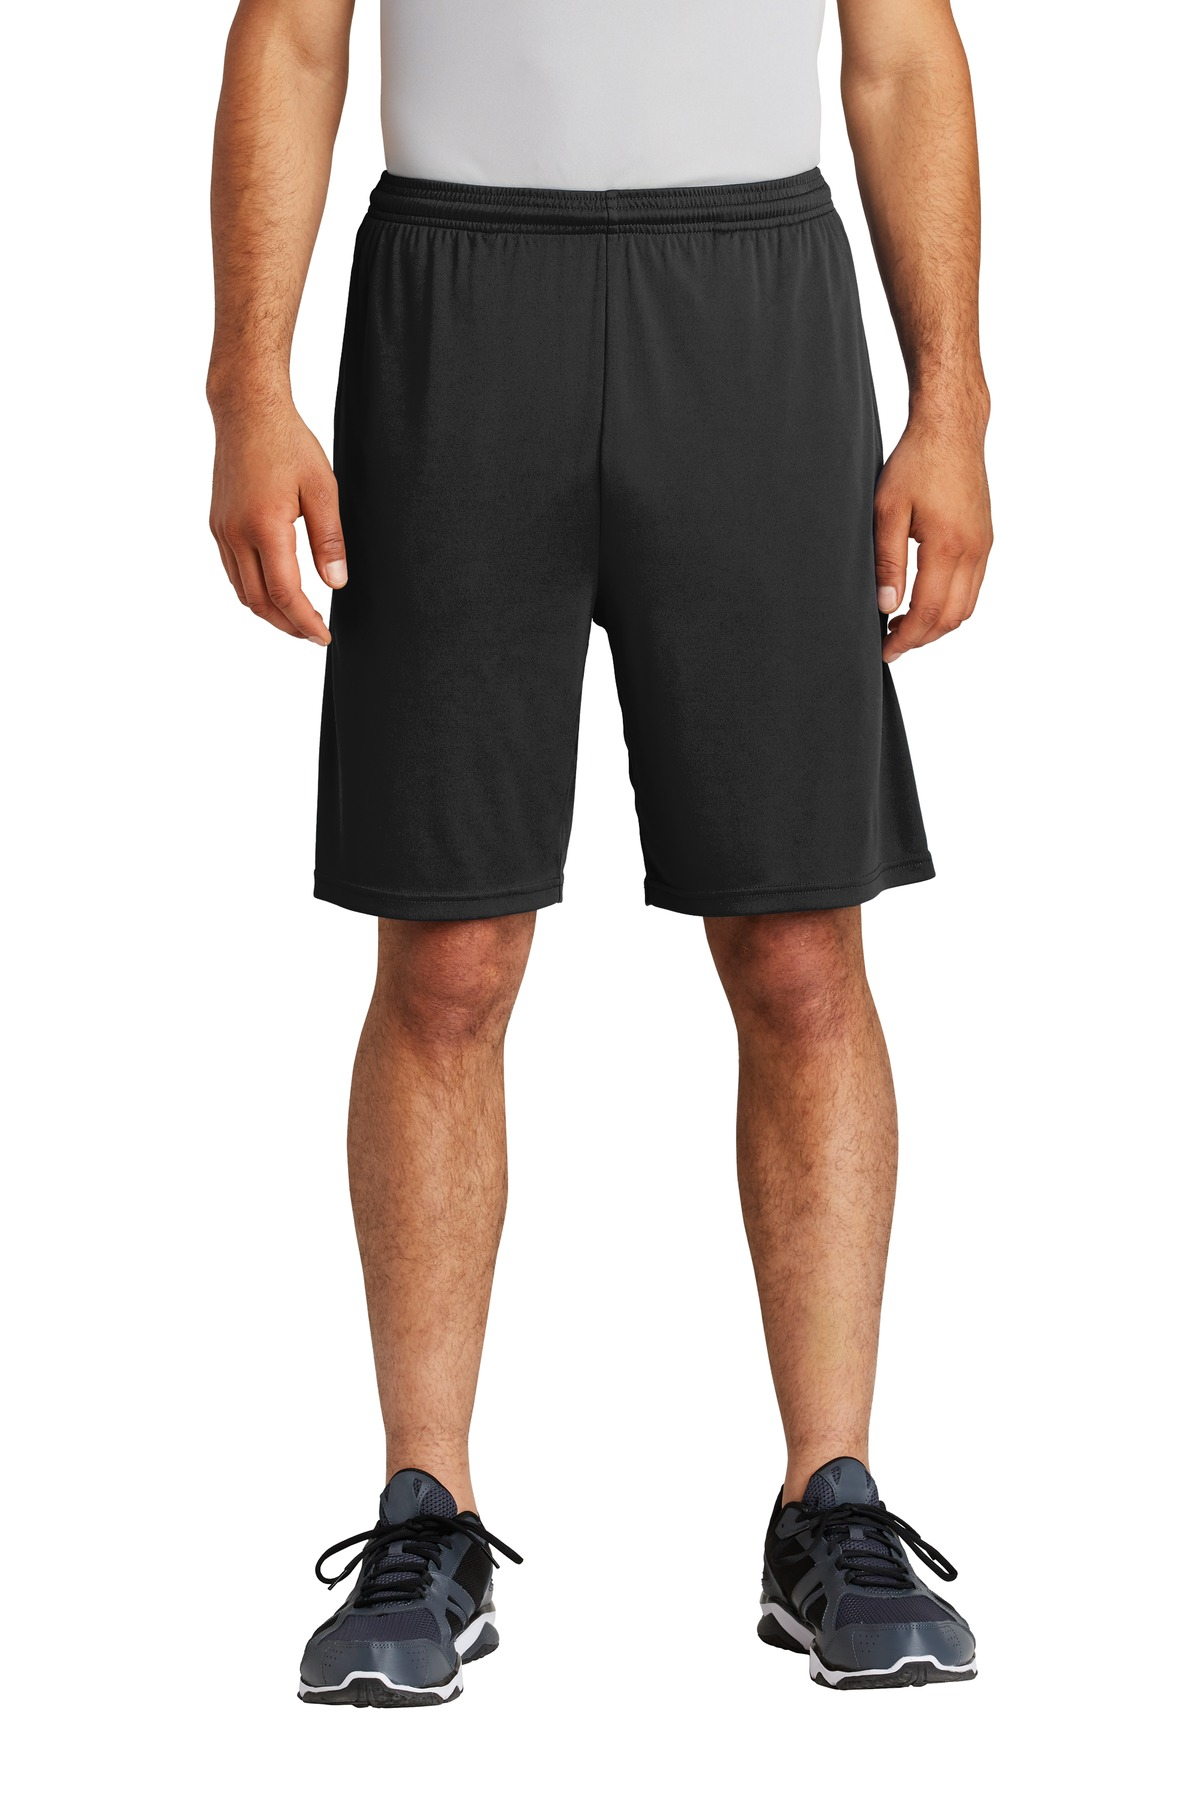 Sport-Tek  ®  PosiCharge  ®  Competitor  ™  Pocketed Short. ST355P - Black